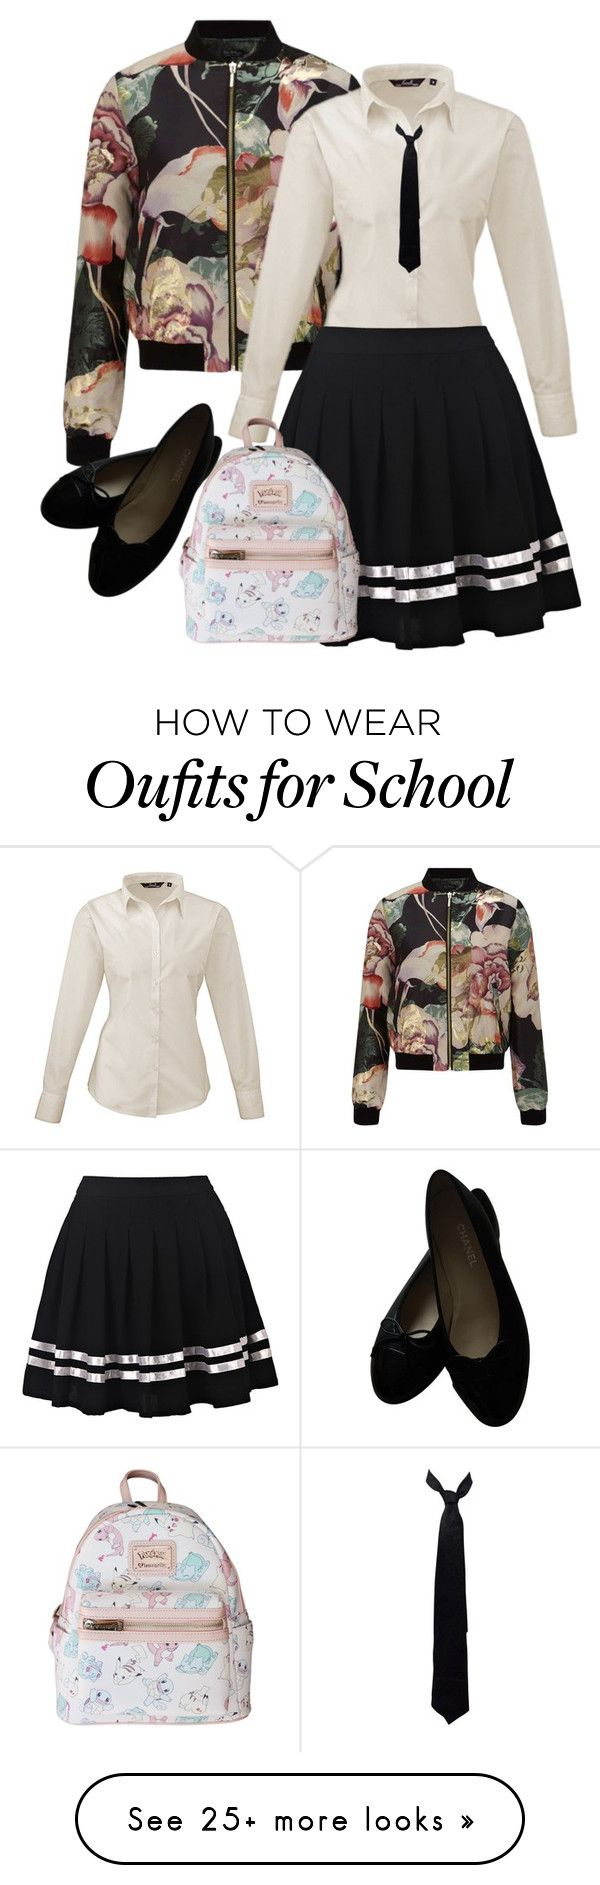 """Back to school"" by zemnaya on Polyvore featuring Miss Selfridge, Balenciaga, Chanel, Loungefly and BackToSchool"